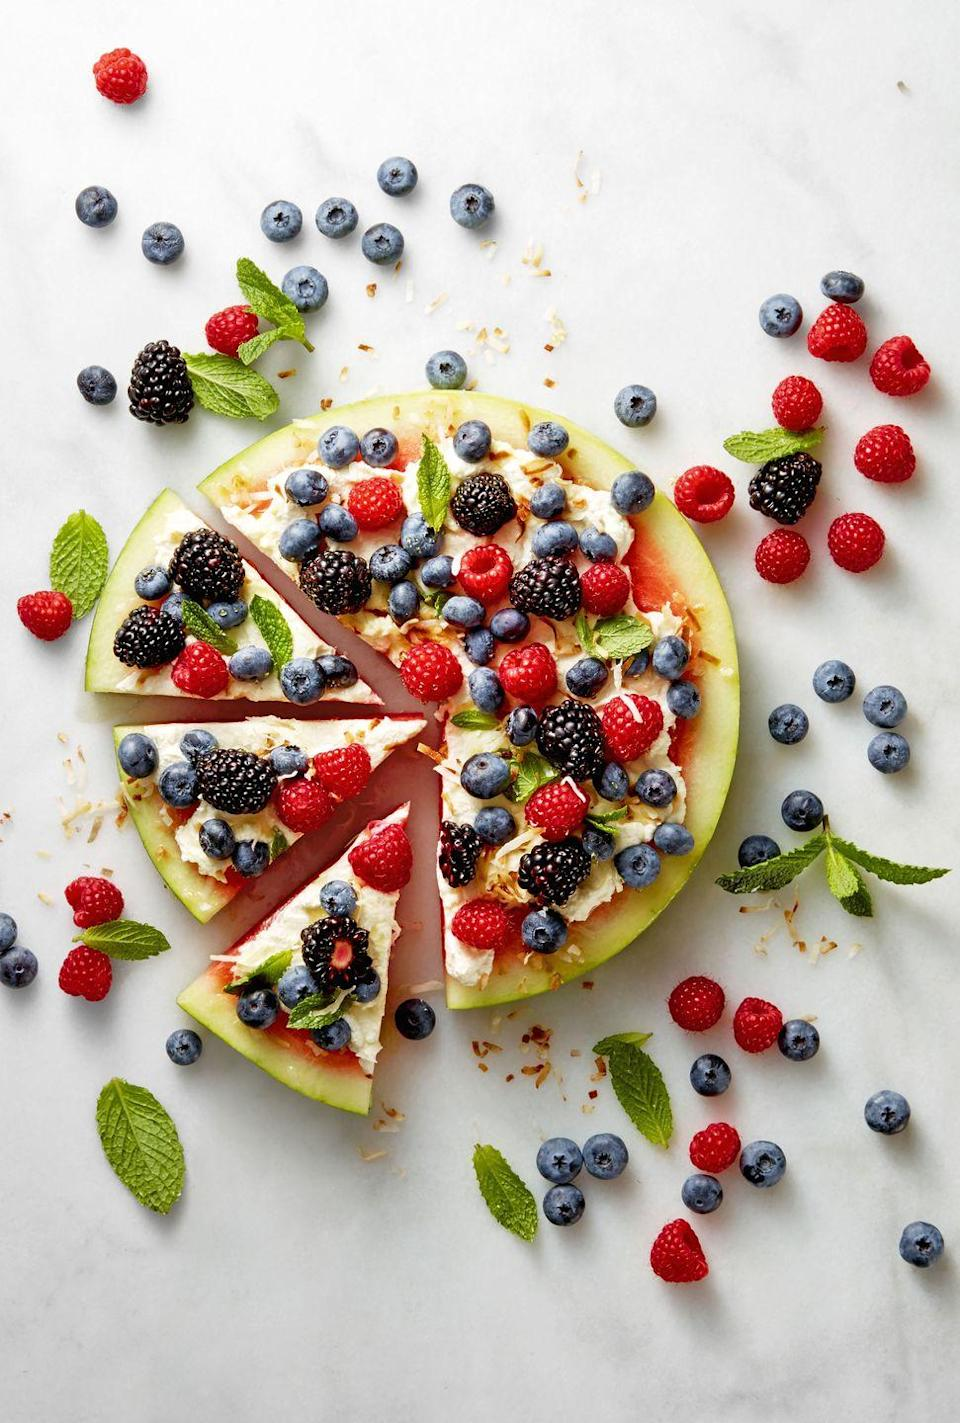 """<p>This patriotic """"pie"""" is delicious any way you slice it. </p><p><a href=""""https://www.goodhousekeeping.com/food-recipes/a39347/watermelon-pizza-recipe/"""" rel=""""nofollow noopener"""" target=""""_blank"""" data-ylk=""""slk:Get the recipe for Watermelon Pizza »"""" class=""""link rapid-noclick-resp""""><em>Get the recipe for Watermelon Pizza » </em></a><br></p>"""